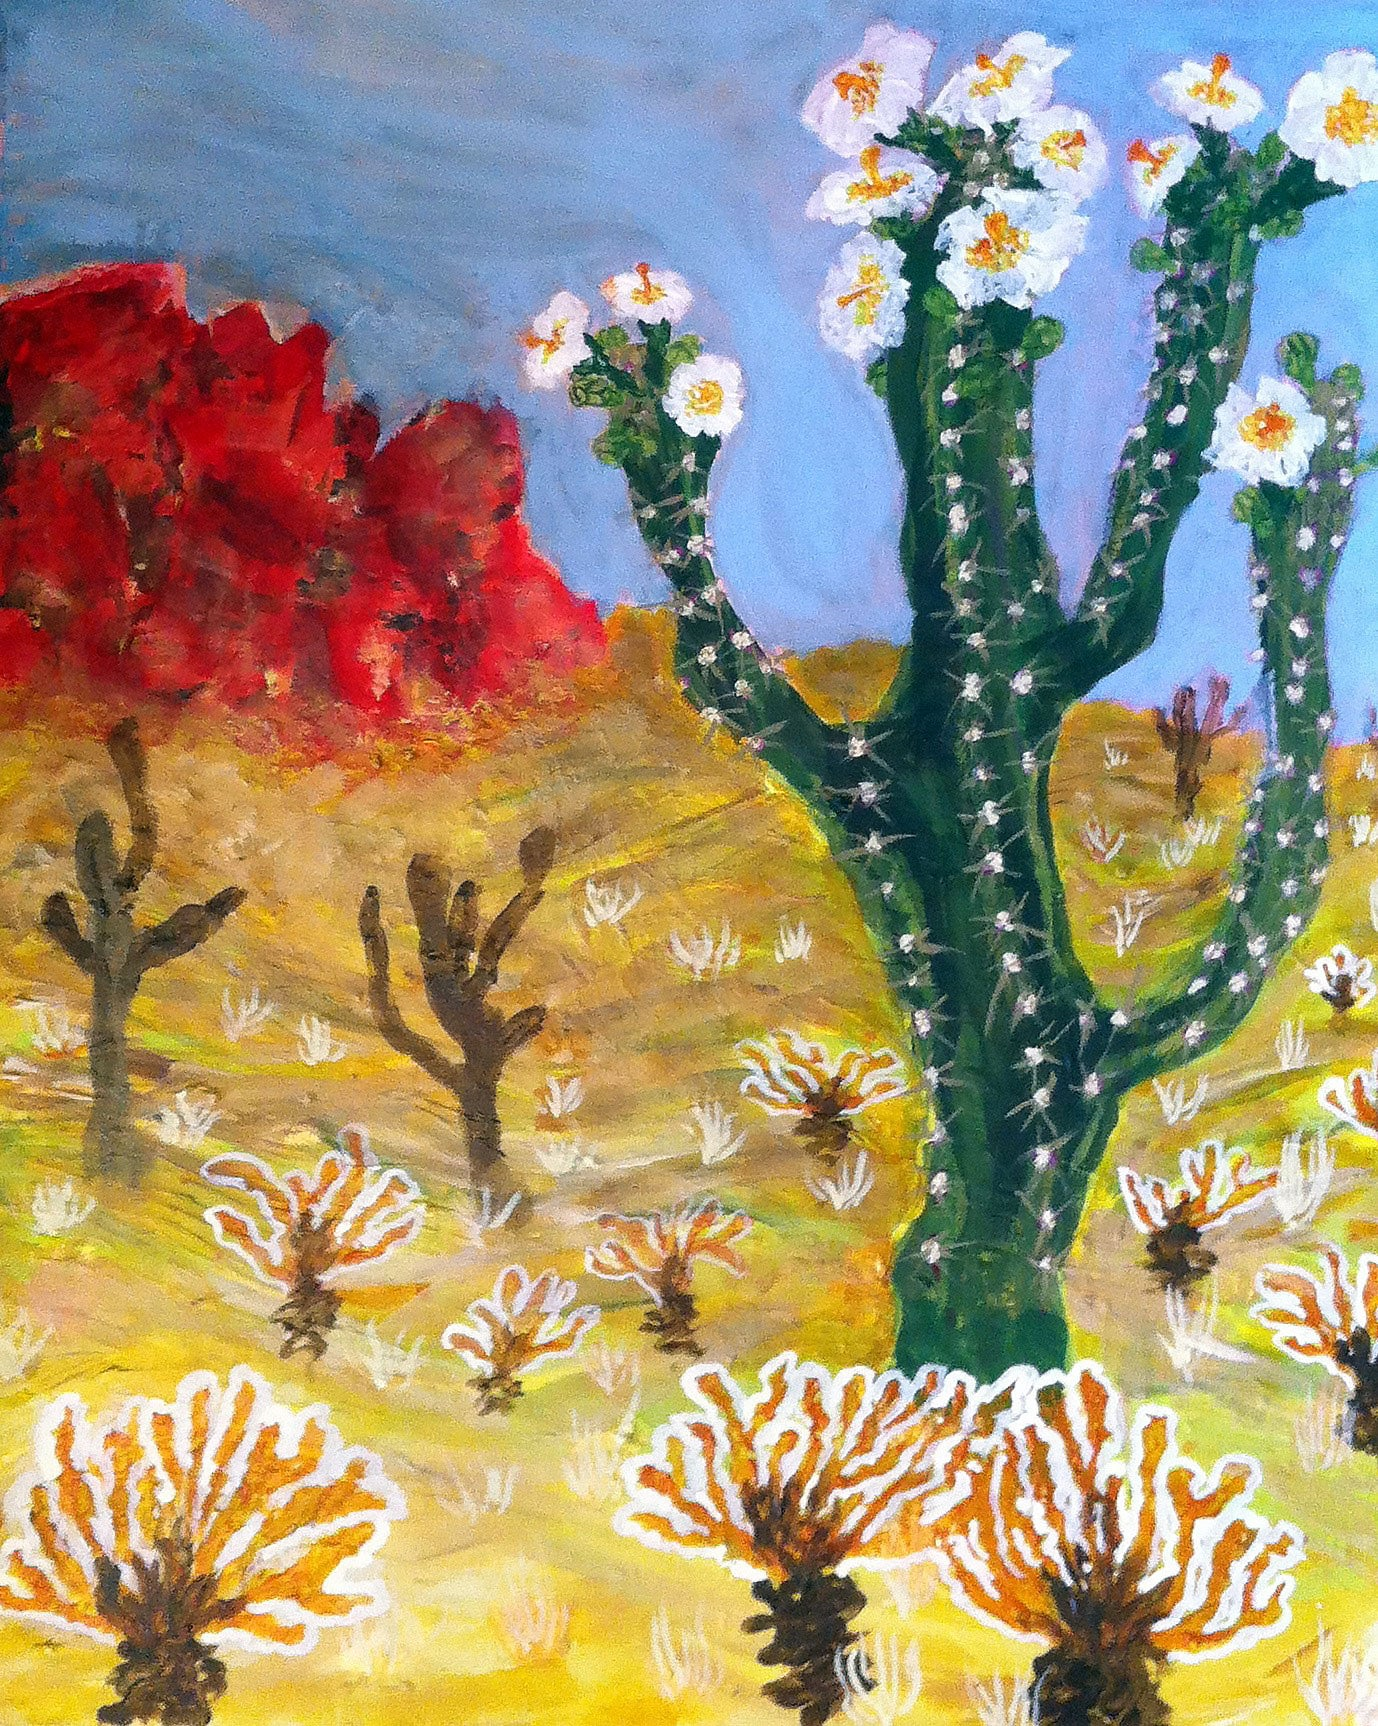 acrylic landscape painting on canvas, prickly sonora desert cactus